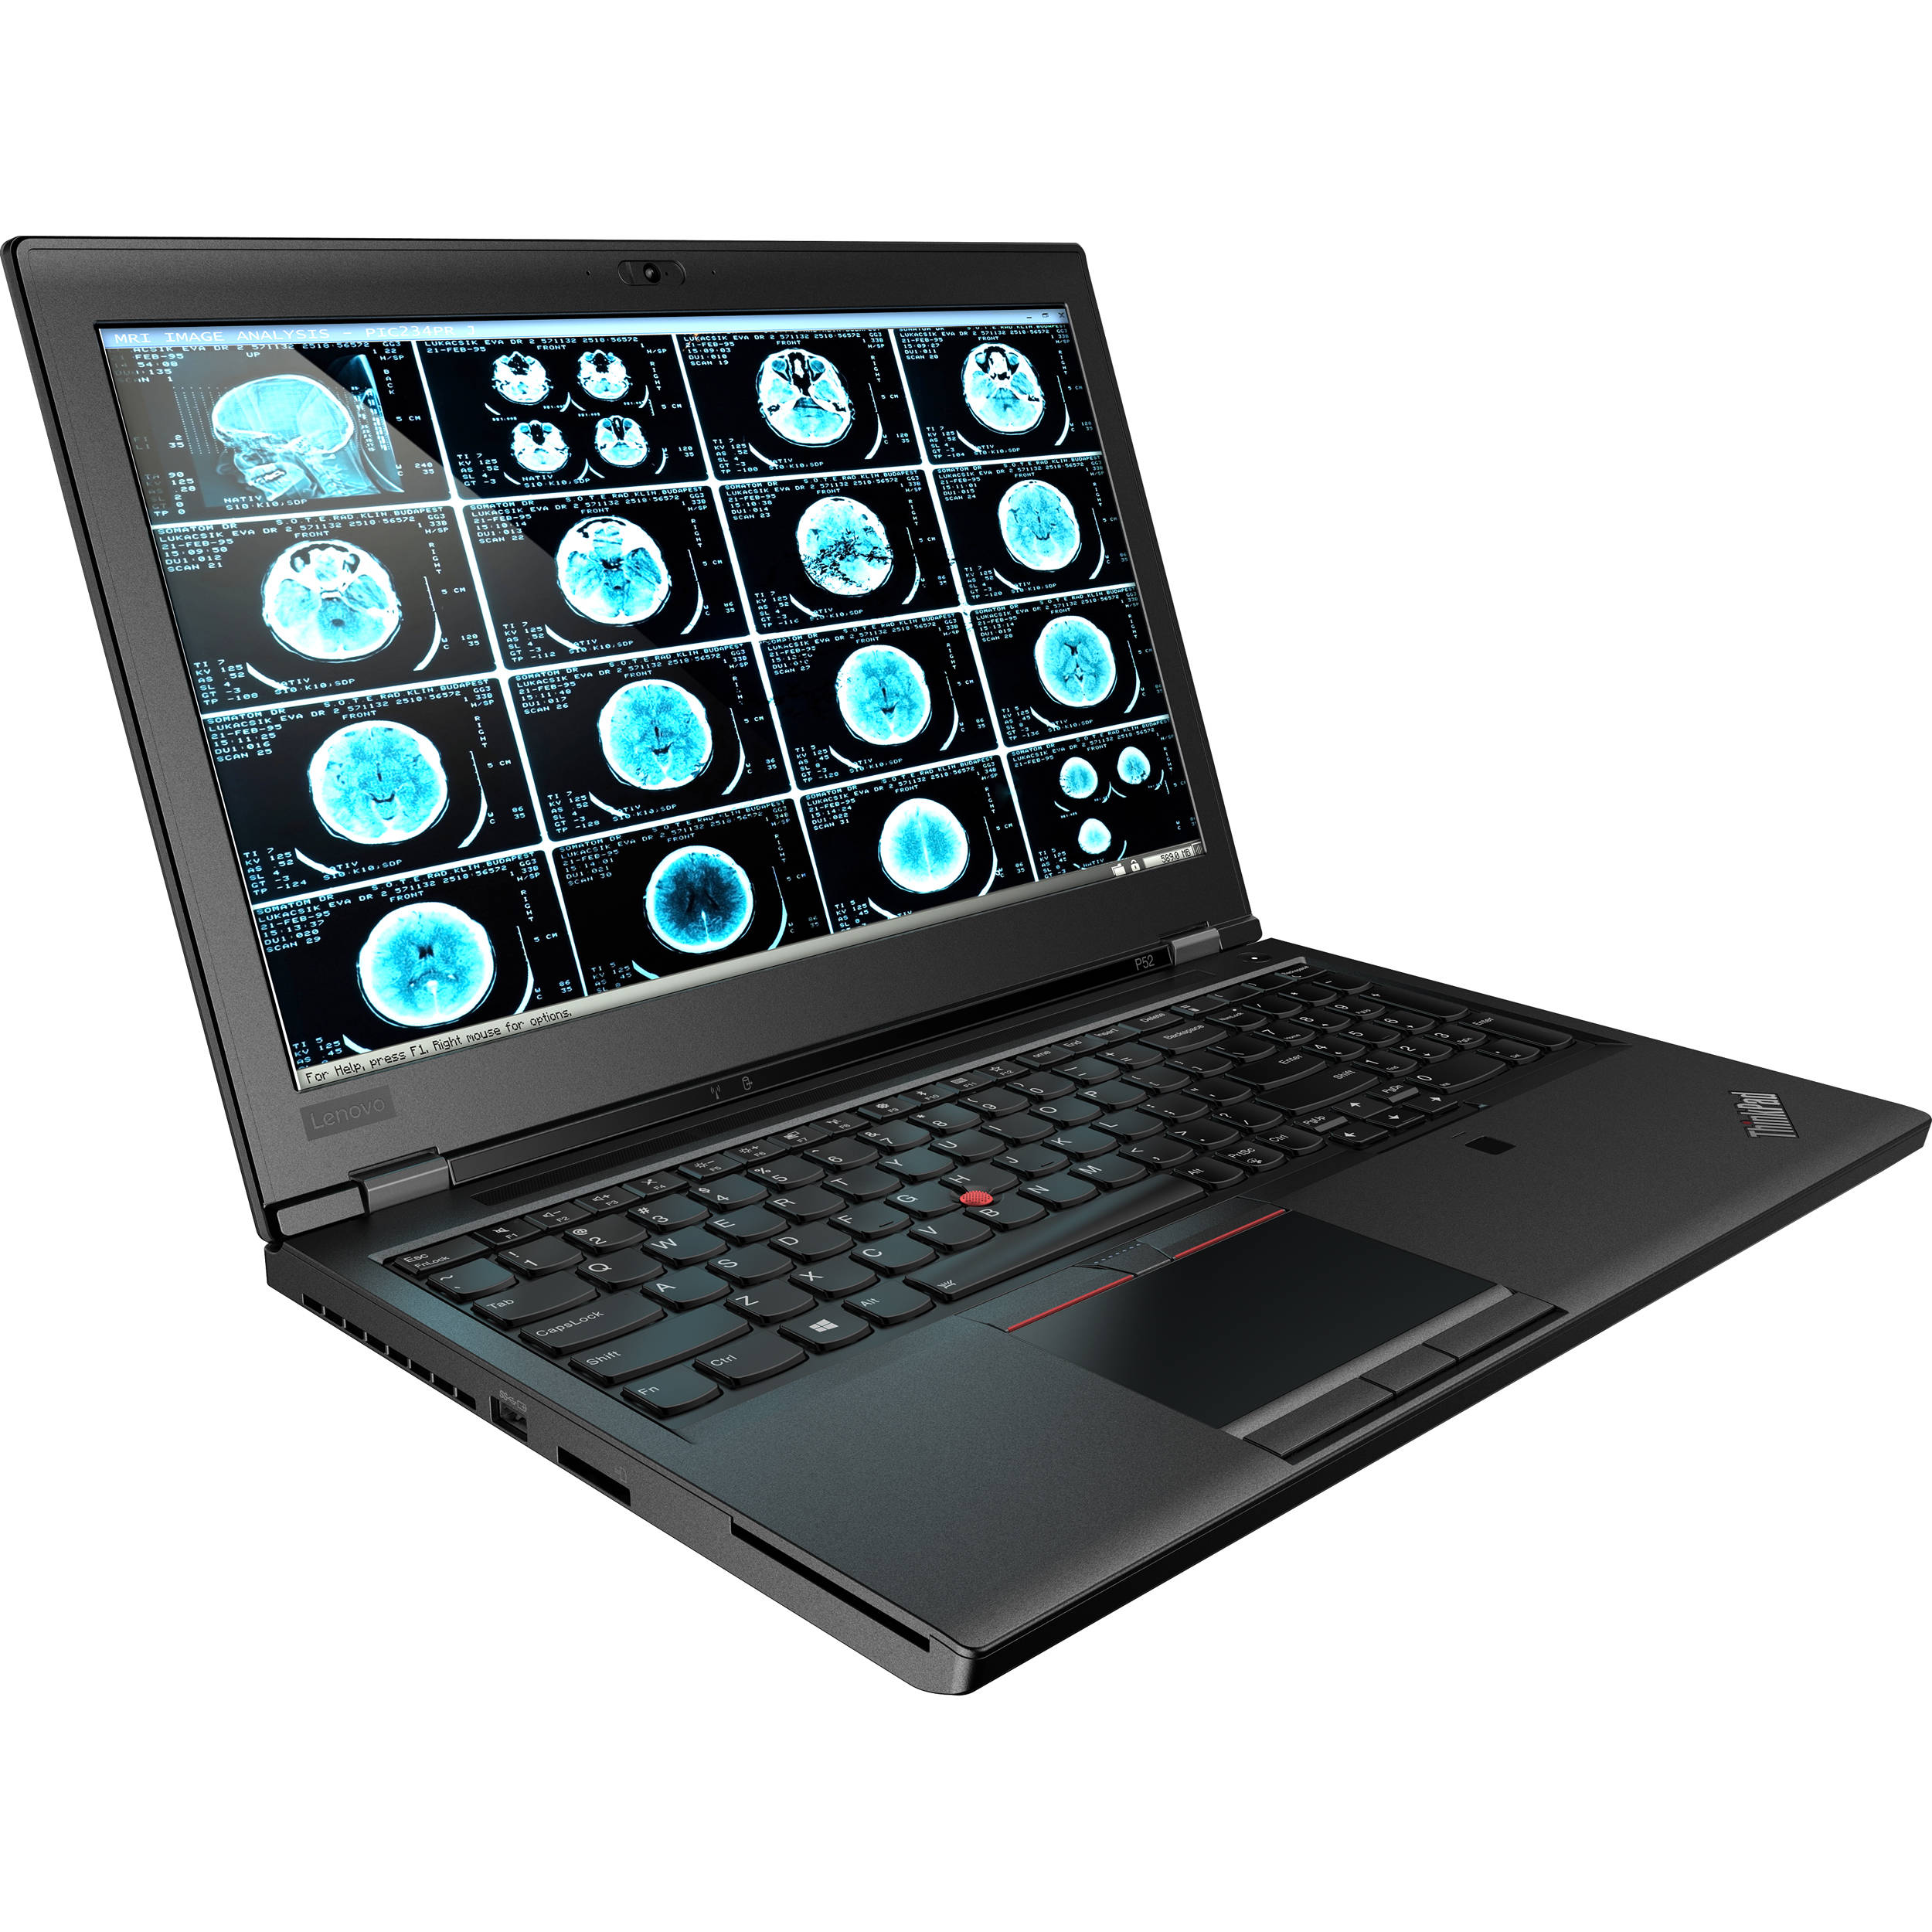 Notebook Lenovo ThinkPad P52 15.6 Full HD Intel Core i7-8750H Quadro P1000M-4GB RAM 16GB HDD 1TB + SSD 512GB Windows 10 Pro